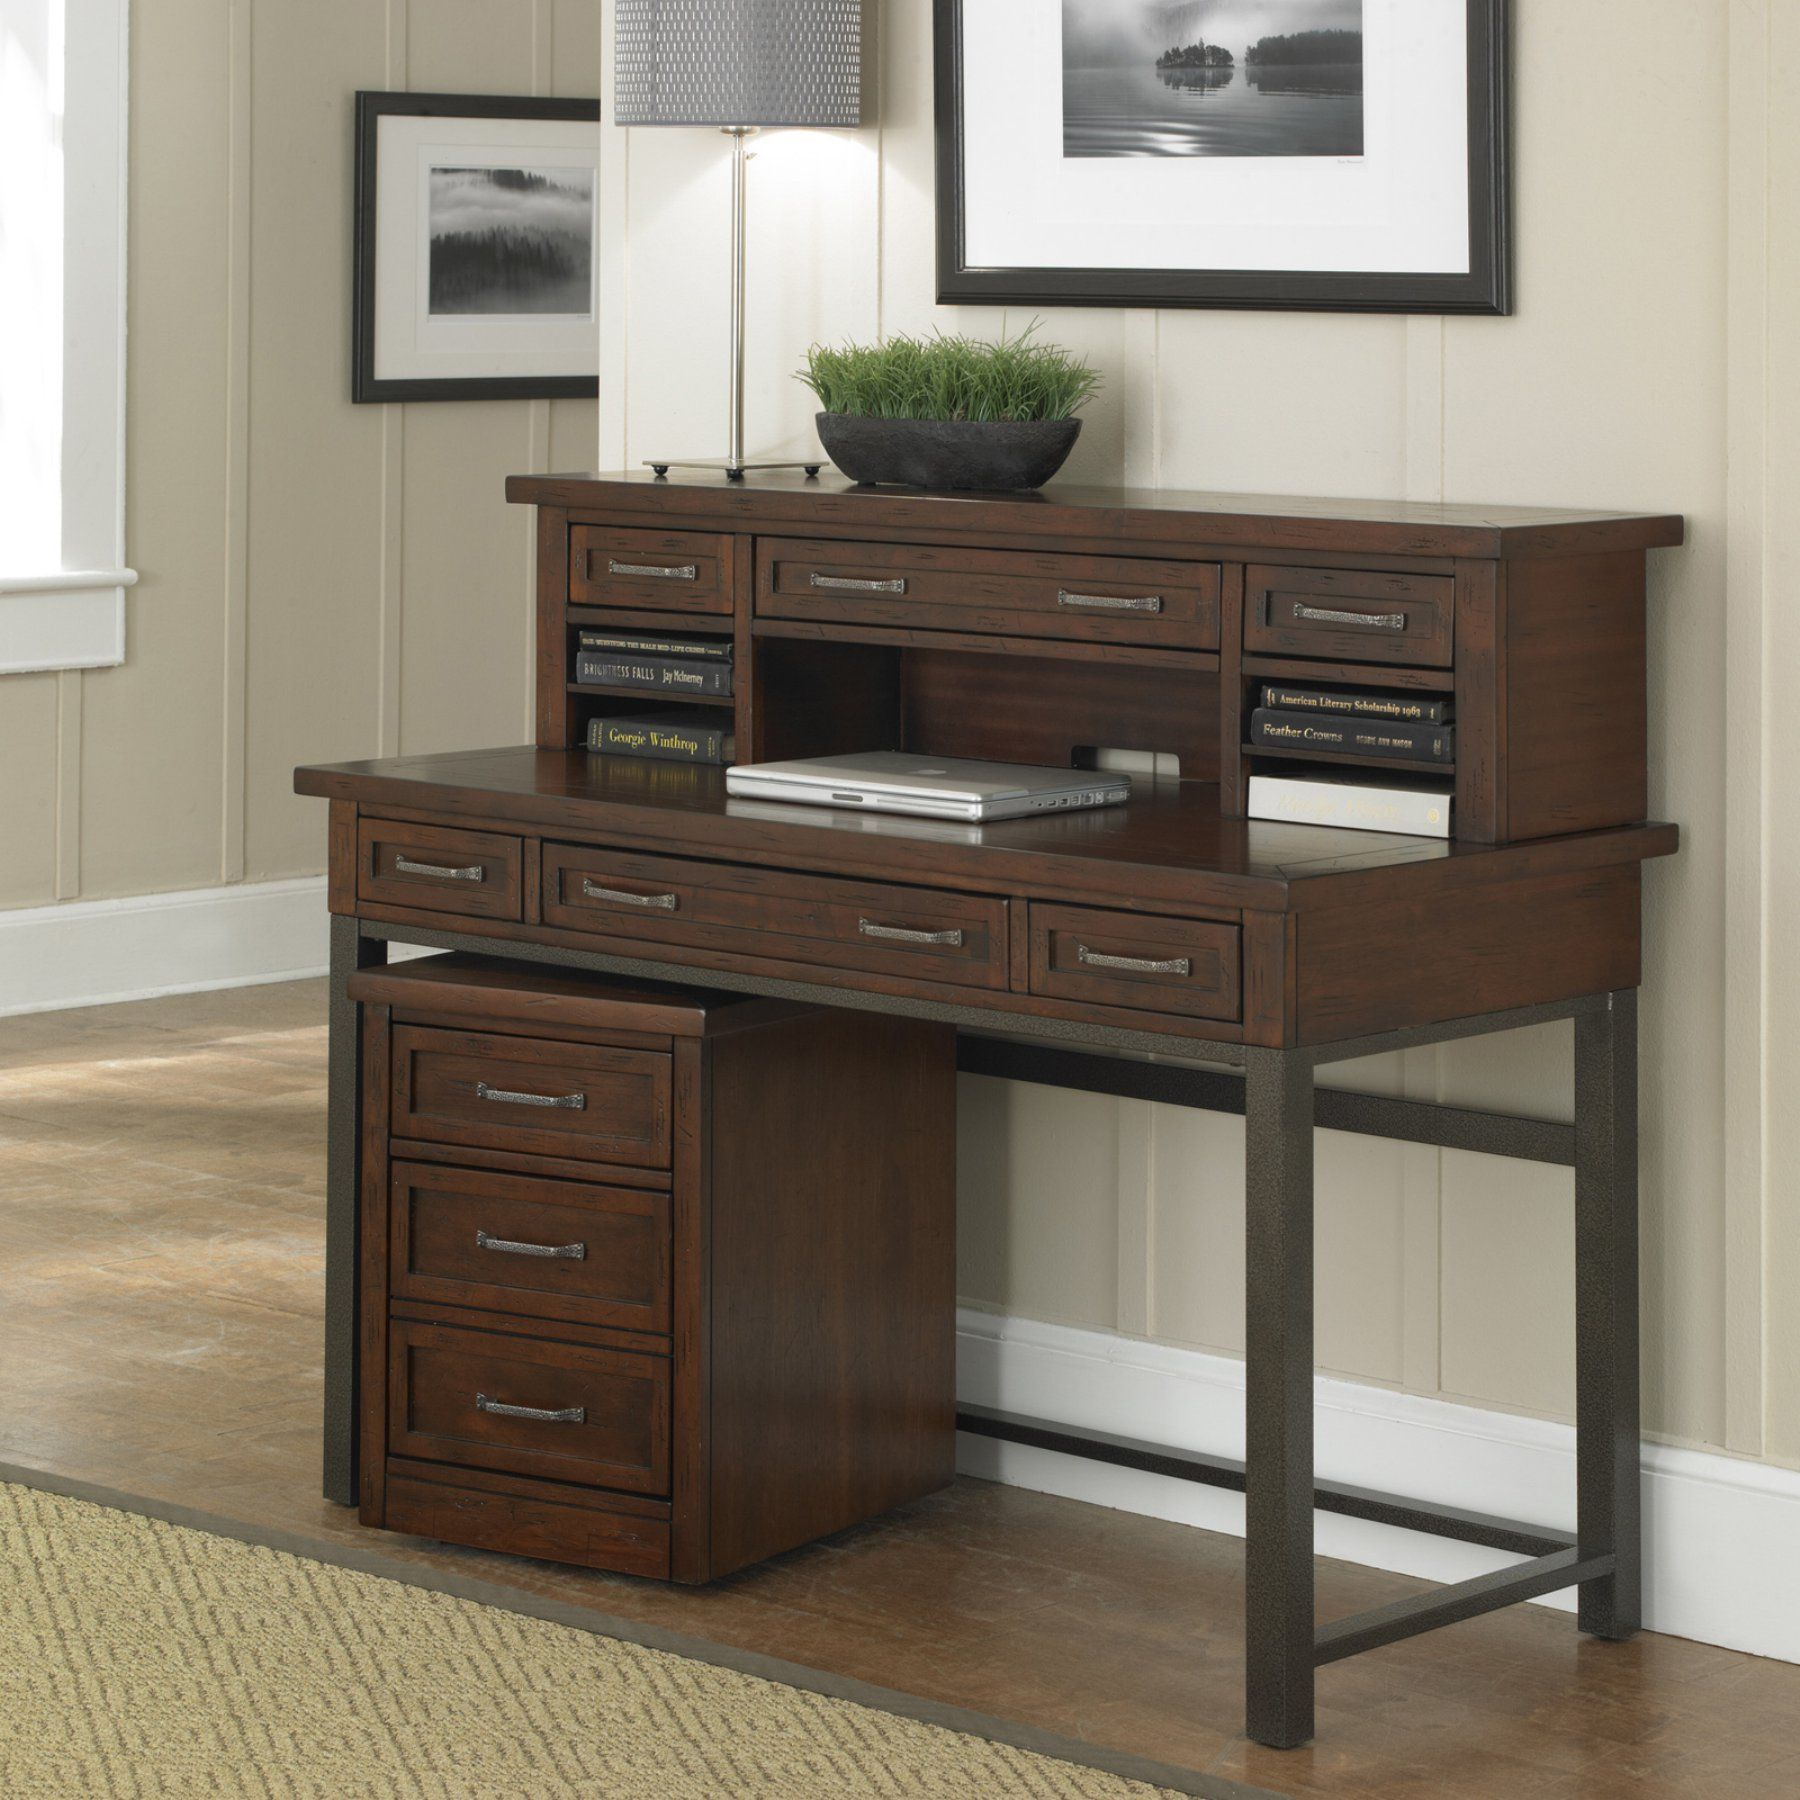 home could measurements office u reference are table this and be shaped full ideas writing executive a size looking stand plus when inch l armchair good mainstays of drawer broadstreet with for desk manhattan furniture hutch corner you computer darkbrown